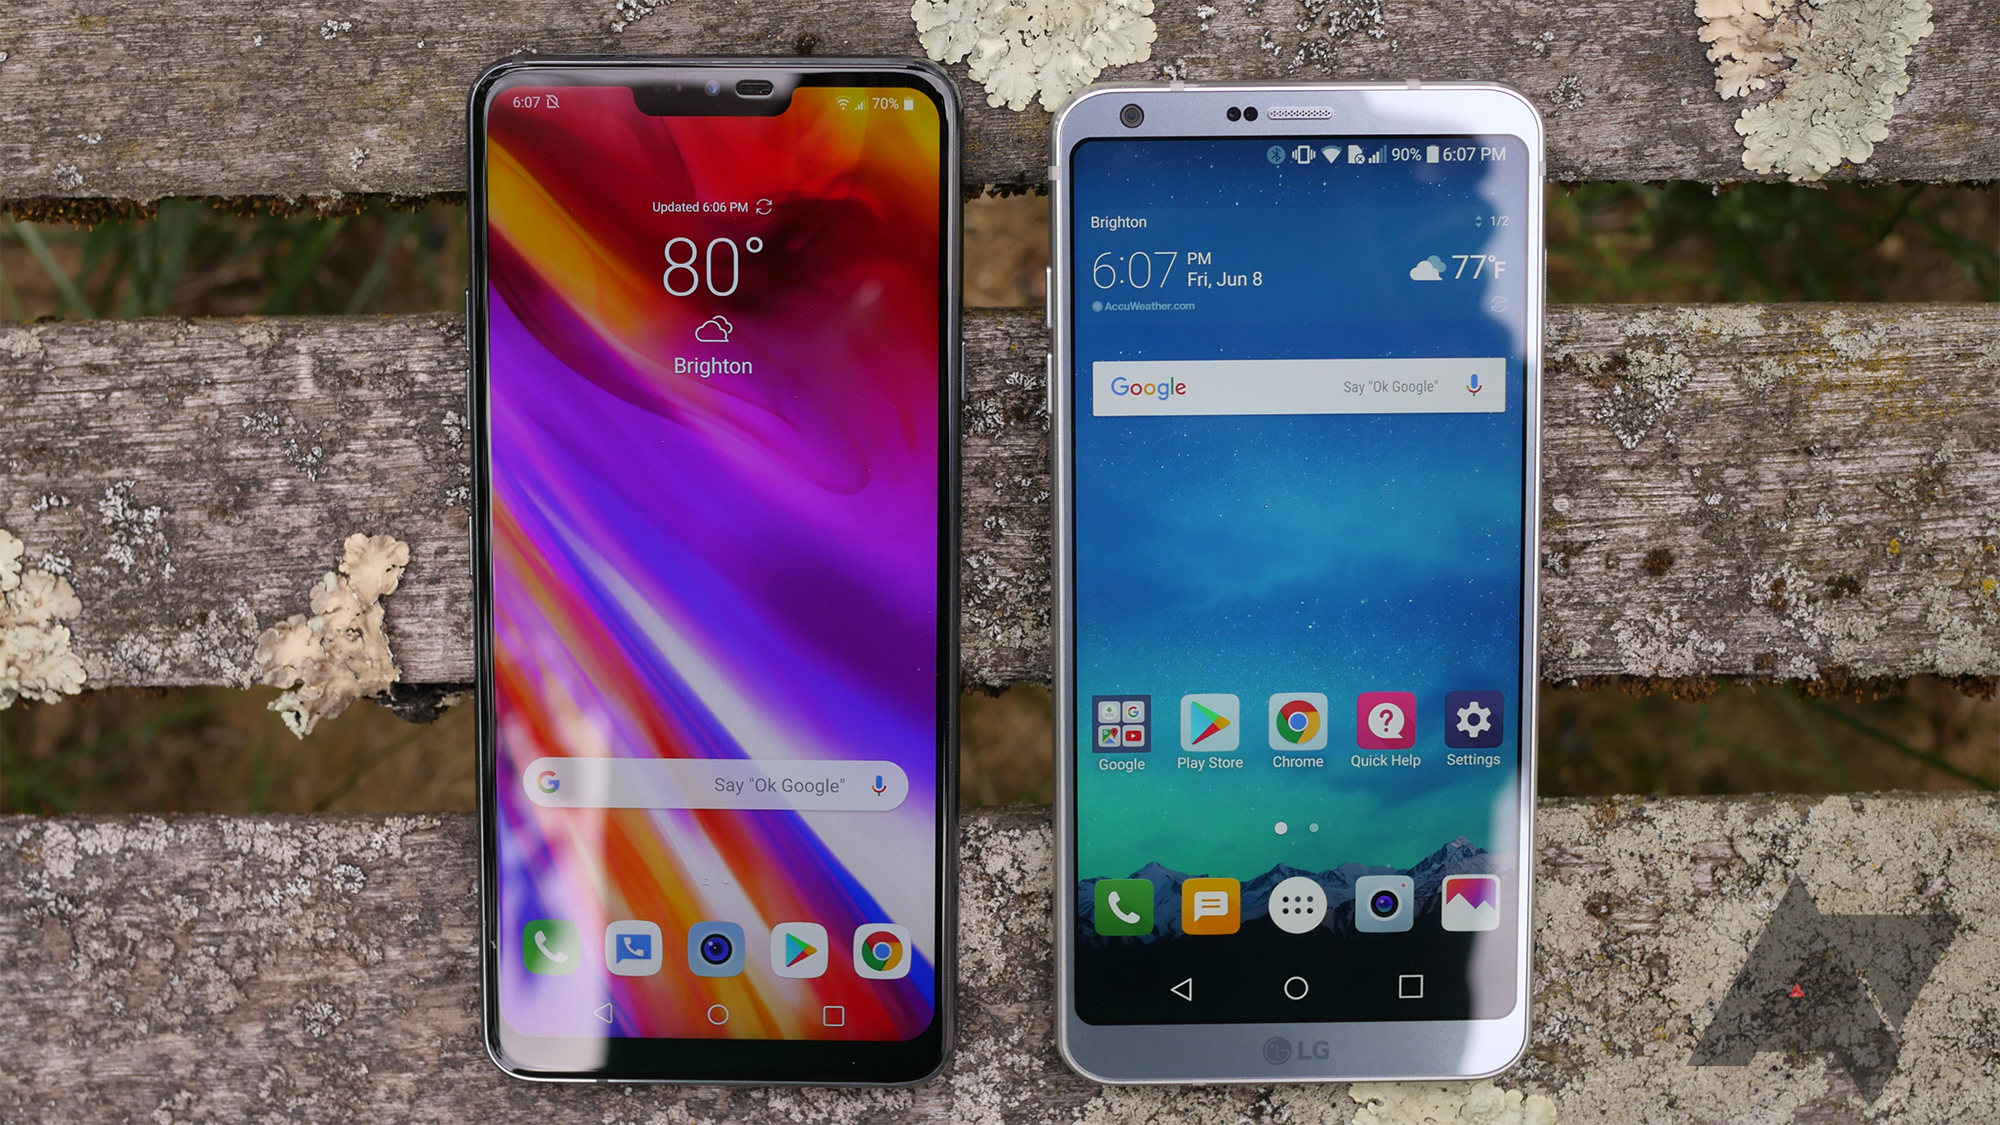 LG G7 ThinQ review: LG needs to do some thinQing about how